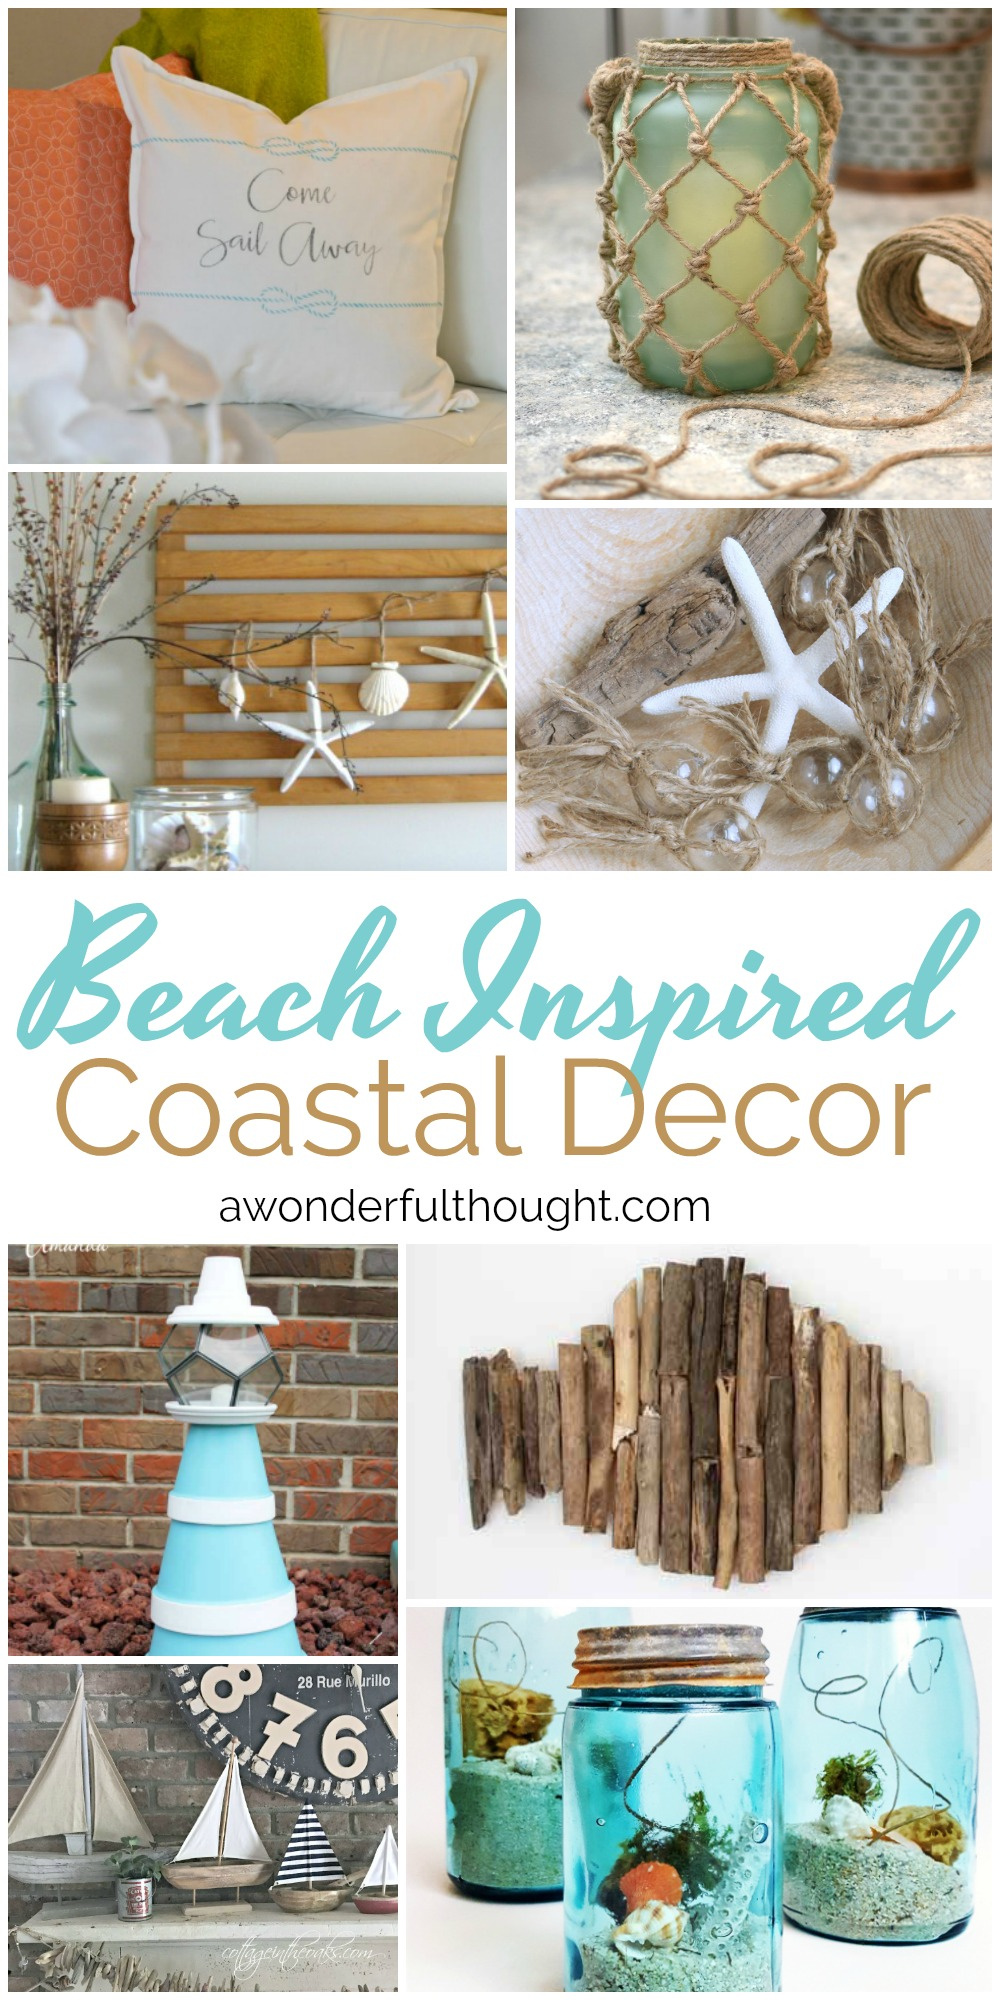 Beach Inspired Coastal Decor